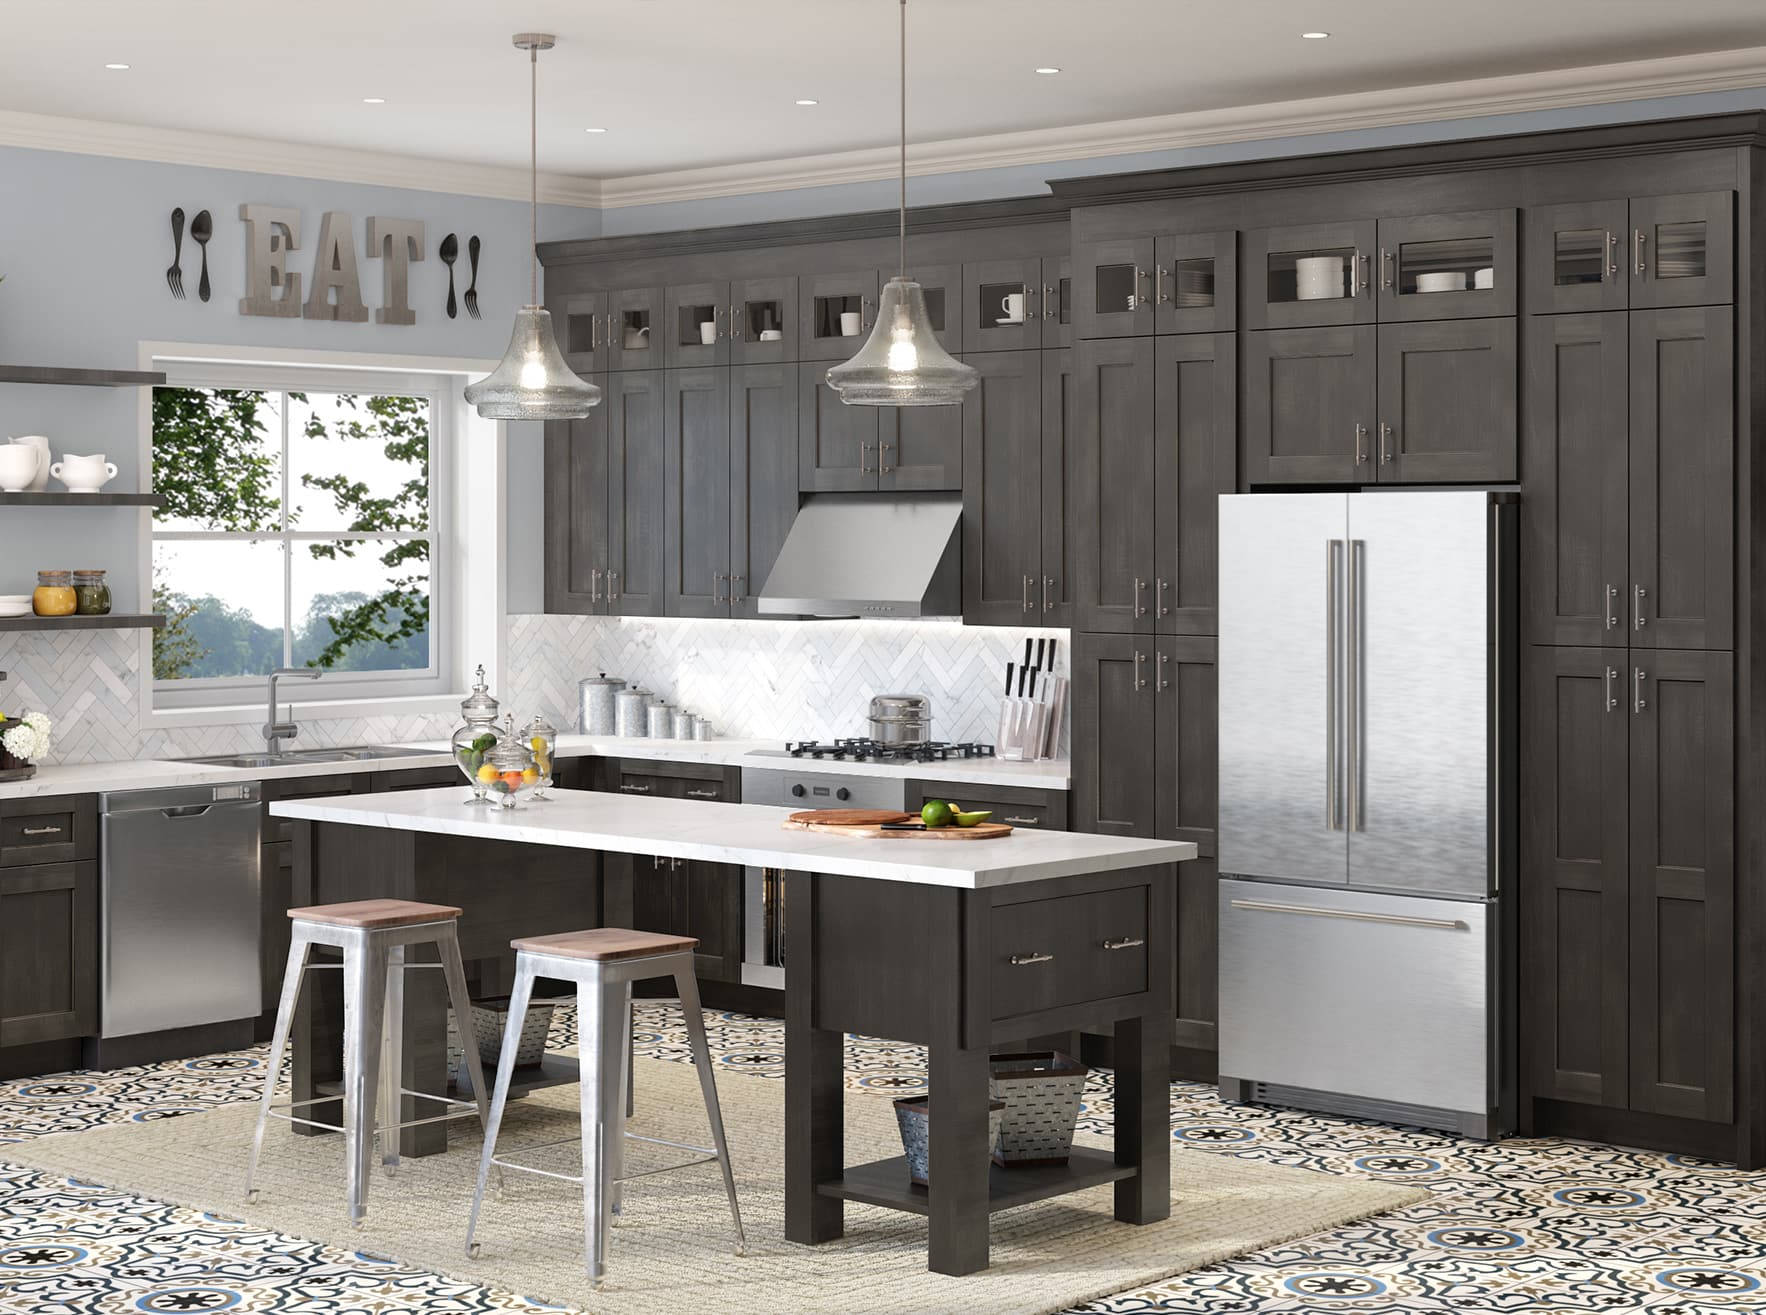 Highland: Classic Cabinets | Kitchen Envy Cabinets